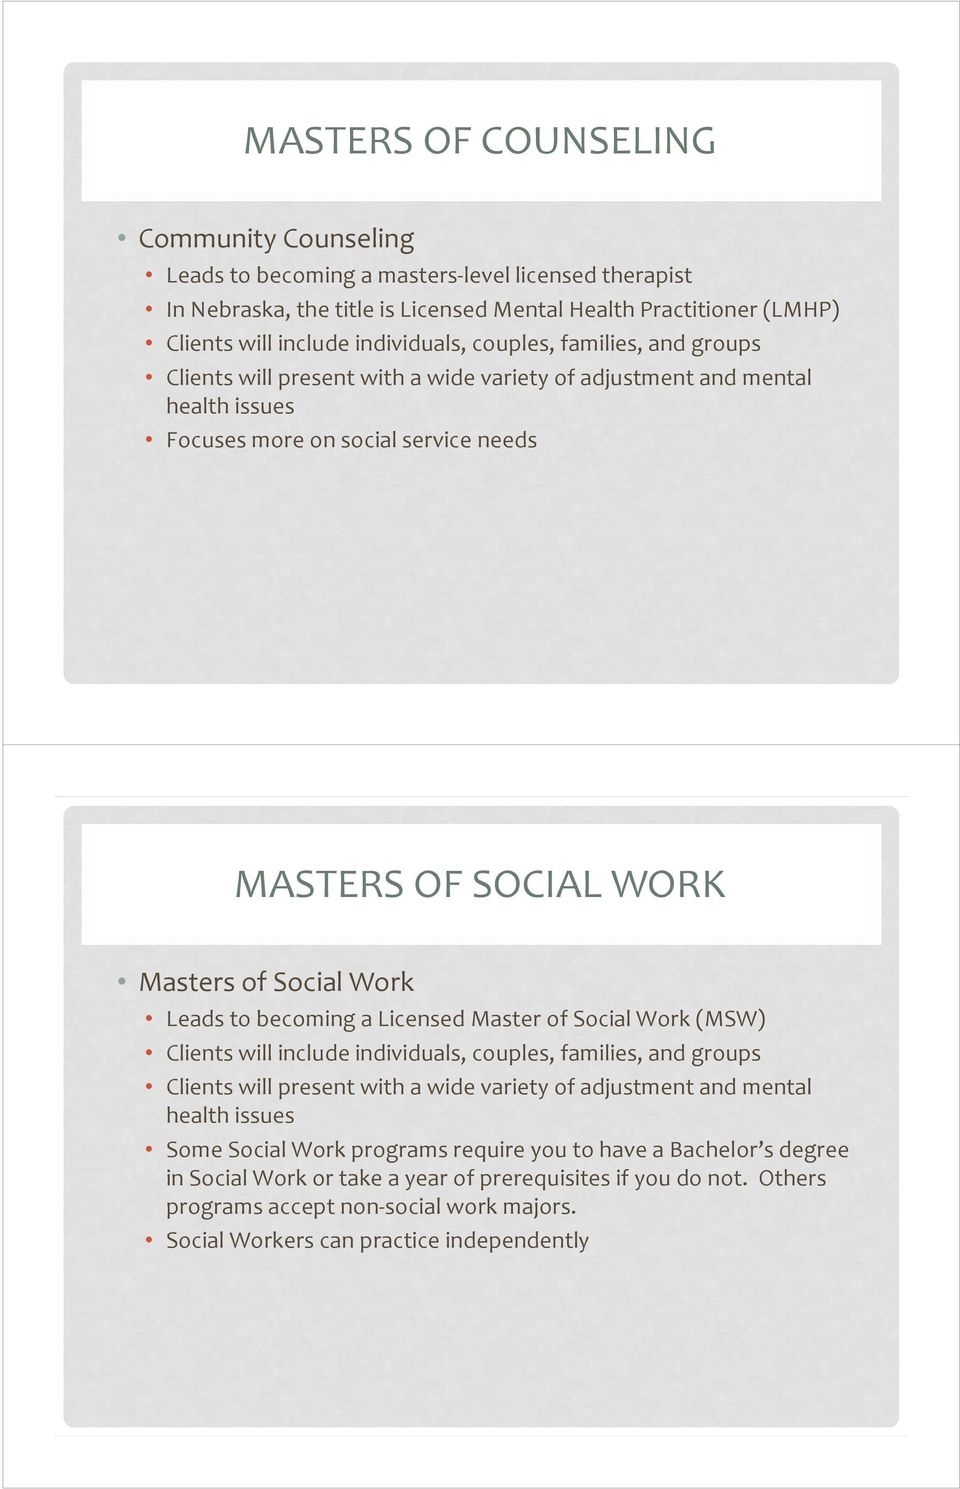 to becoming a Licensed Master of Social Work (MSW) Clients will include individuals, couples, families, and groups Clients will present with a wide variety of adjustment and mental health issues Some